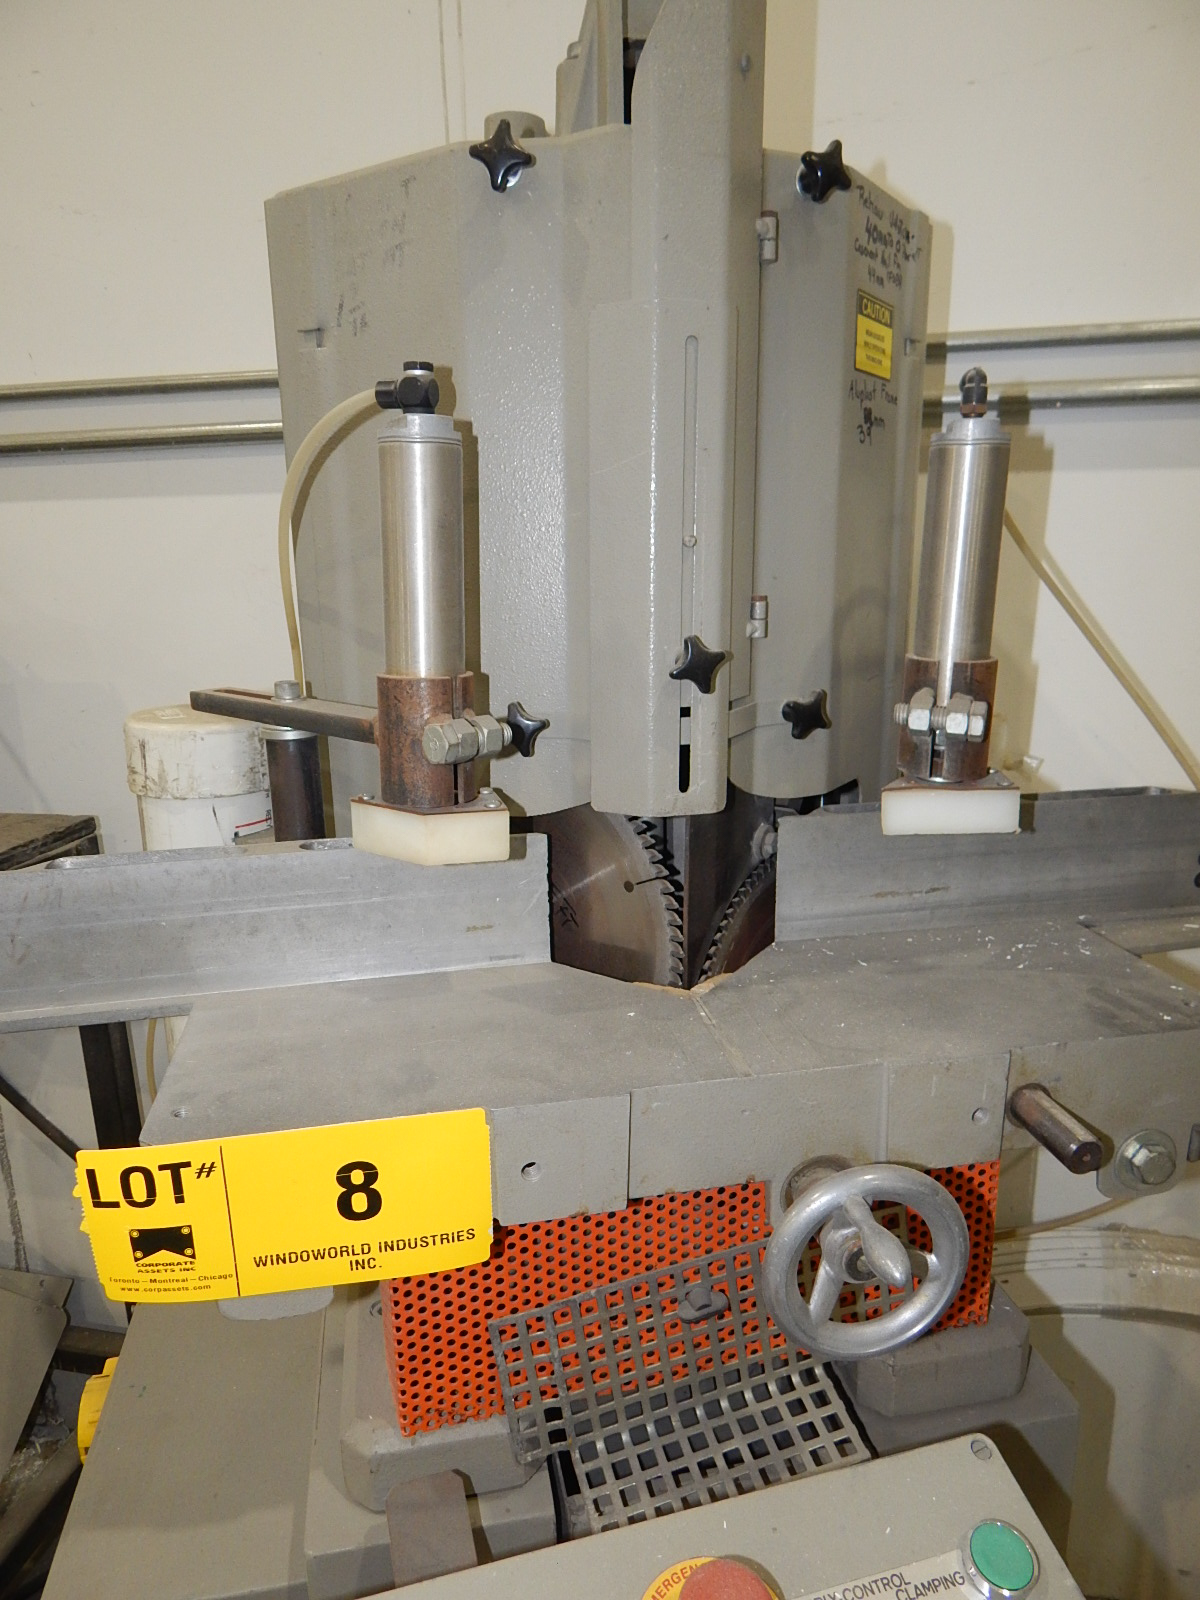 ELU 101 TWIN HEAD NOTCHING SAW WITH PNEUMATIC CLAMPING, 600V/3PH/50HZ, S/N: 91060 (CI) - Image 2 of 3